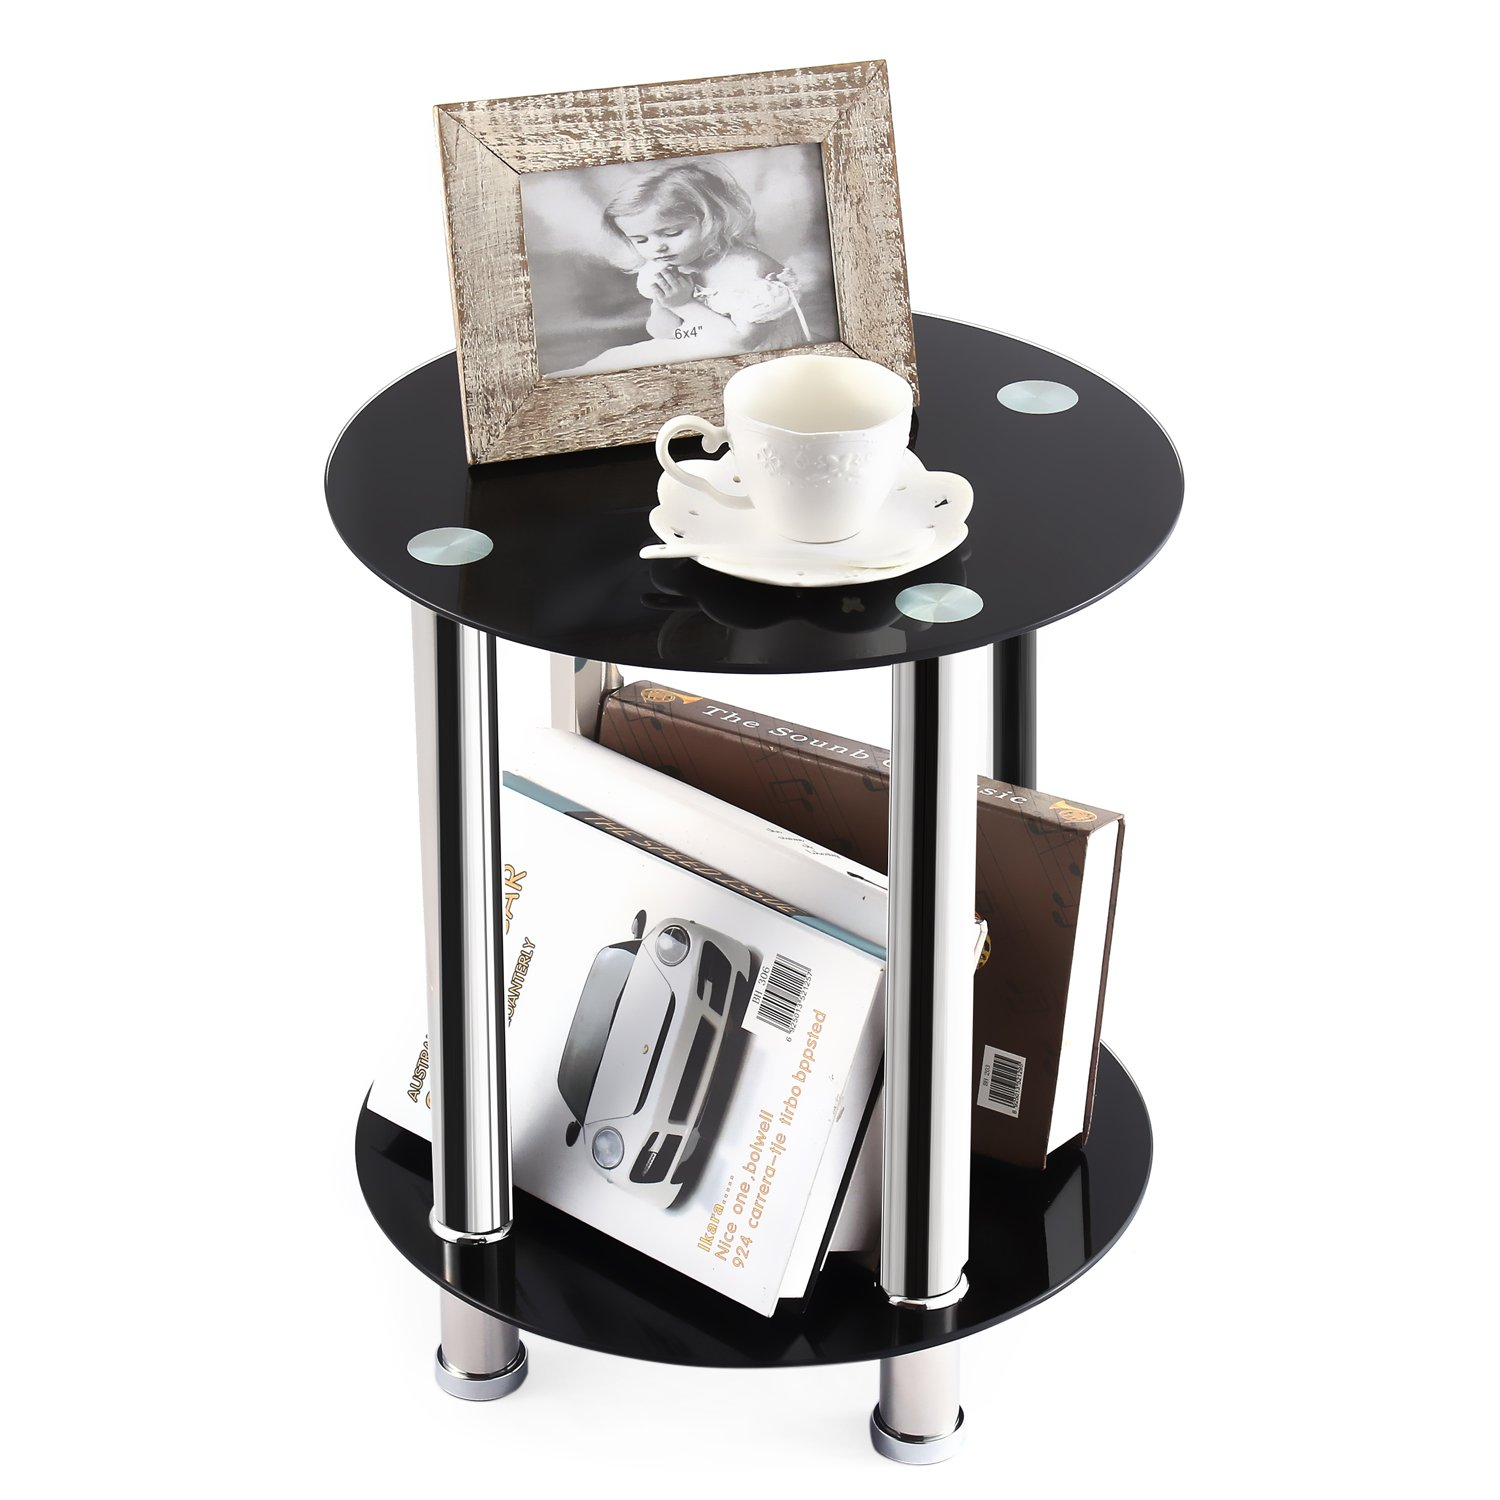 TAVR End Table,Sofa Table,Night Table,Coffee Table,with Safty Tempered Glass Shelves Round ET1001 TAVR Furniture RLET1001